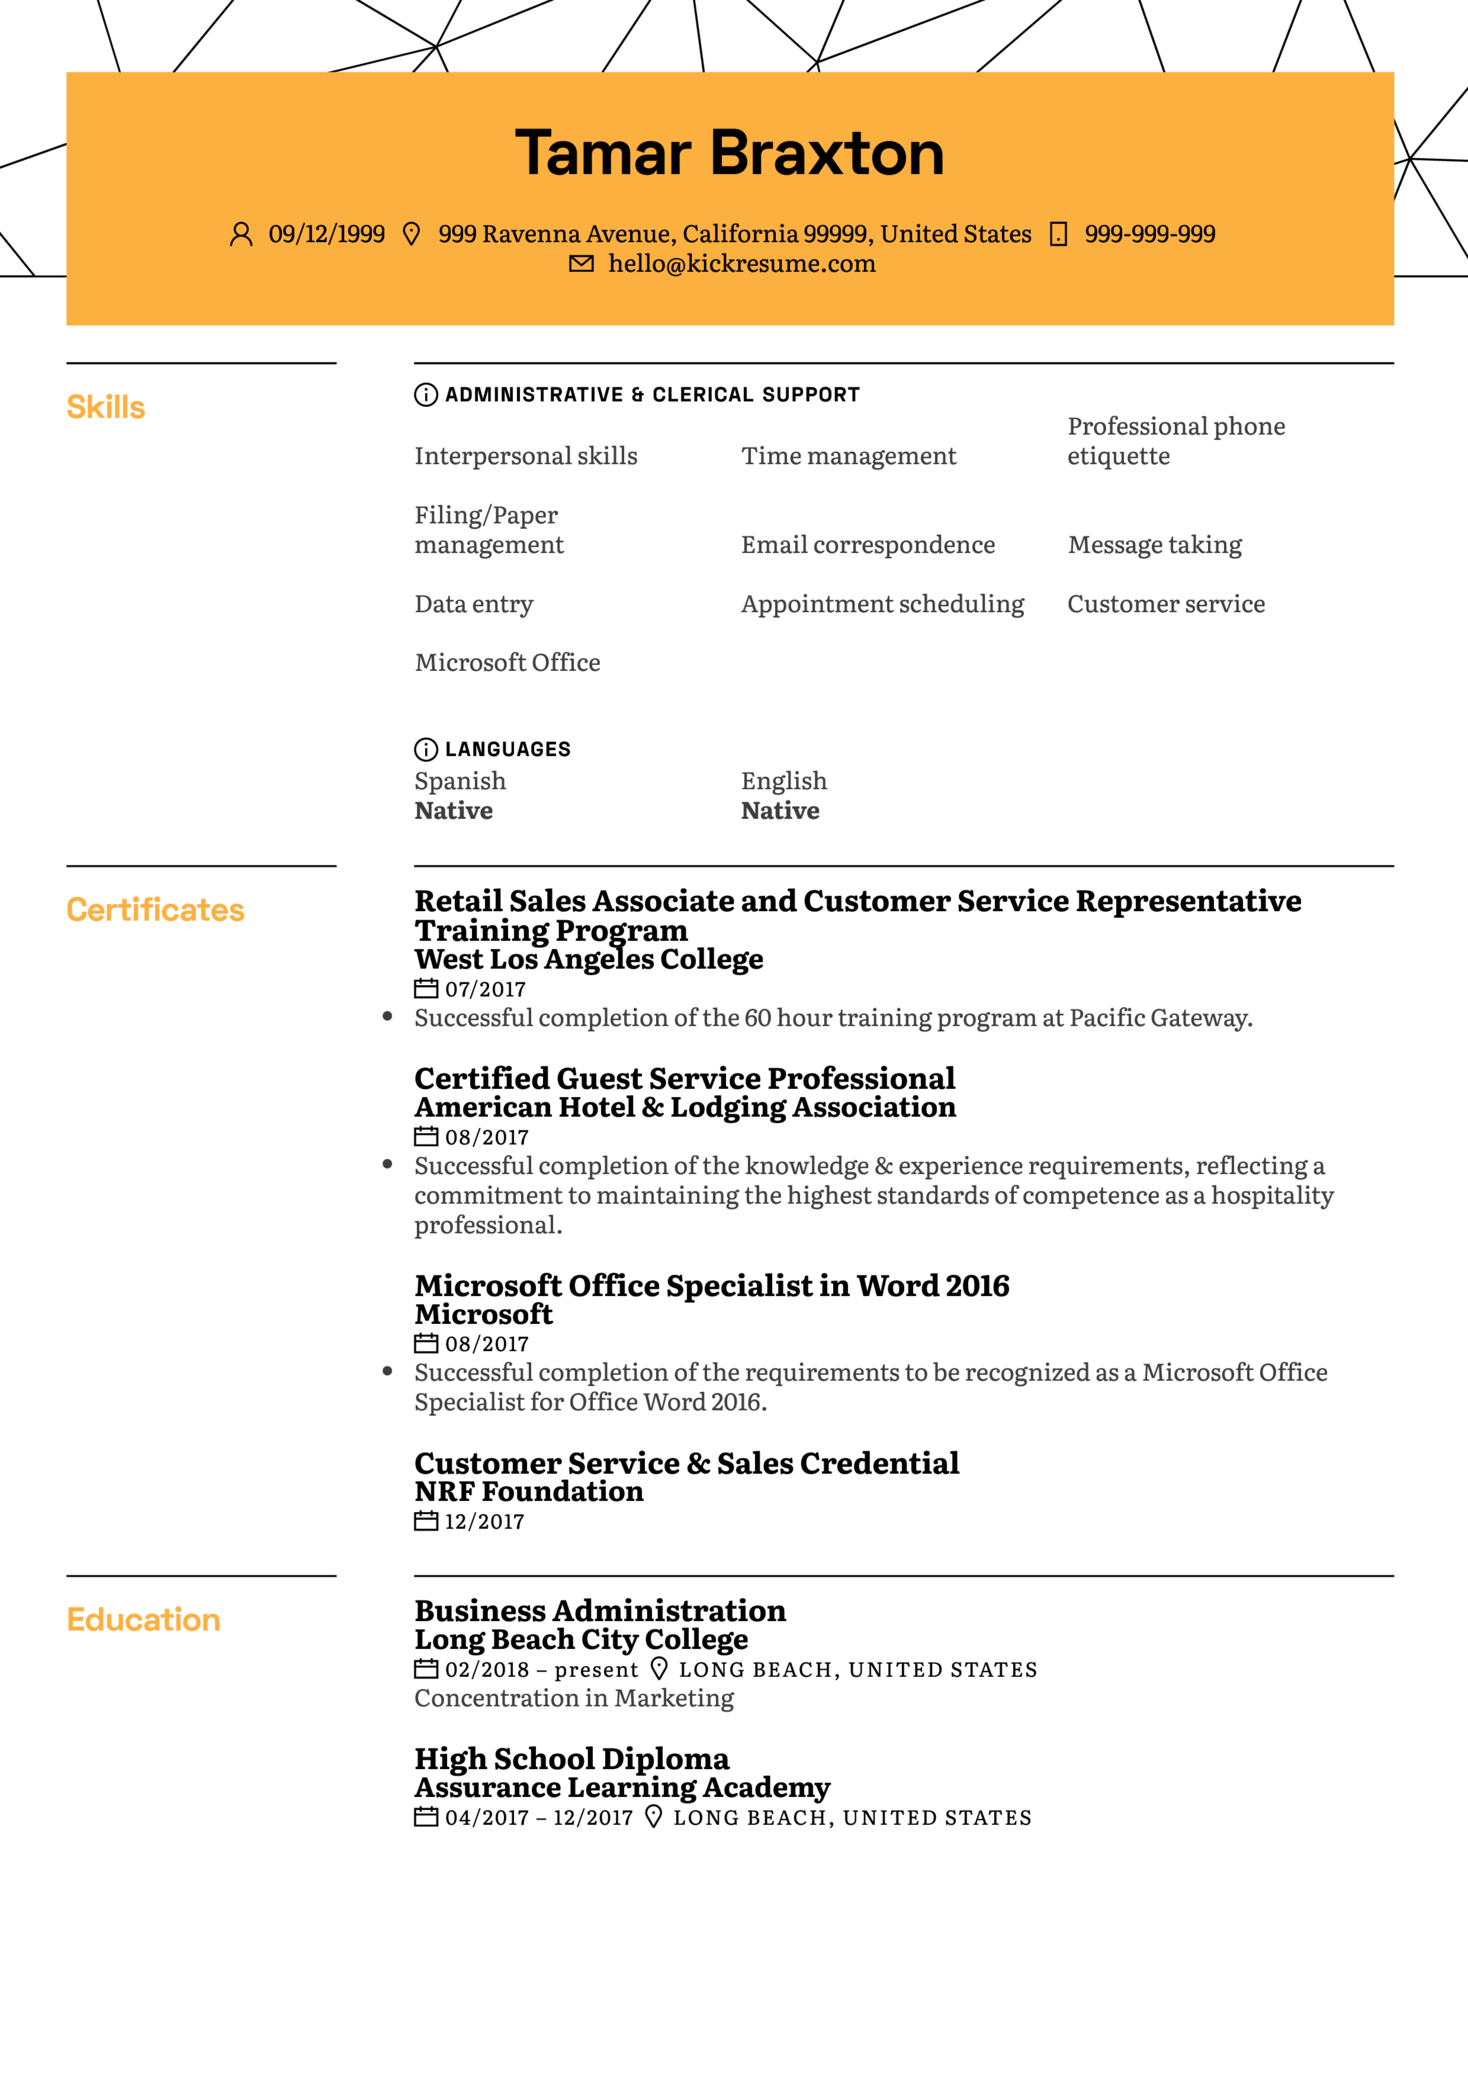 Student Office Assistant CV Example (parte 1)